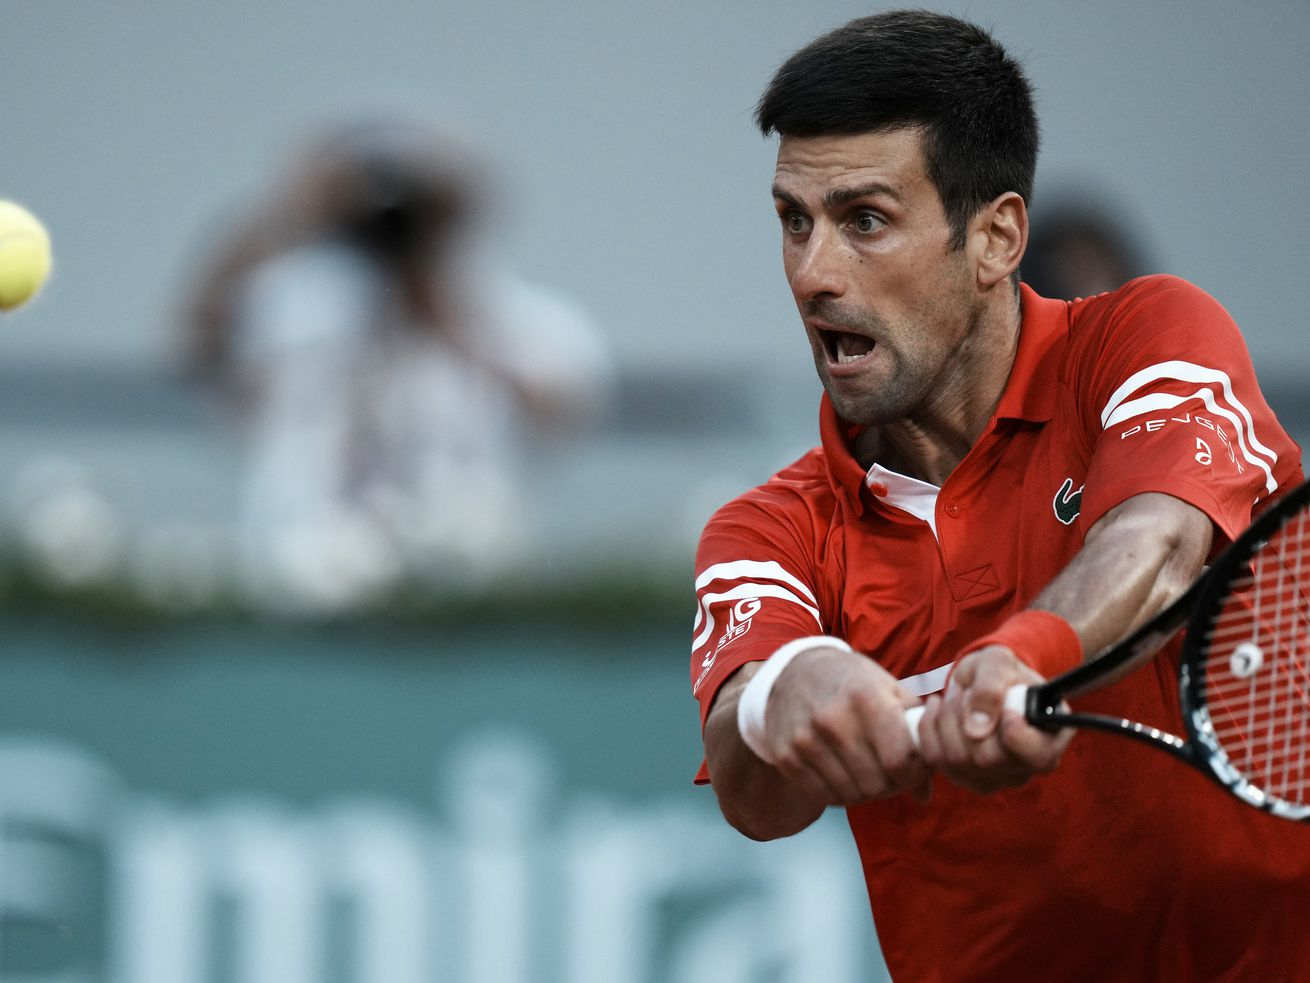 Serbia's Novak Djokovic returns the ball to Spain's Rafael Nadal during their semifinal match at the French Open.